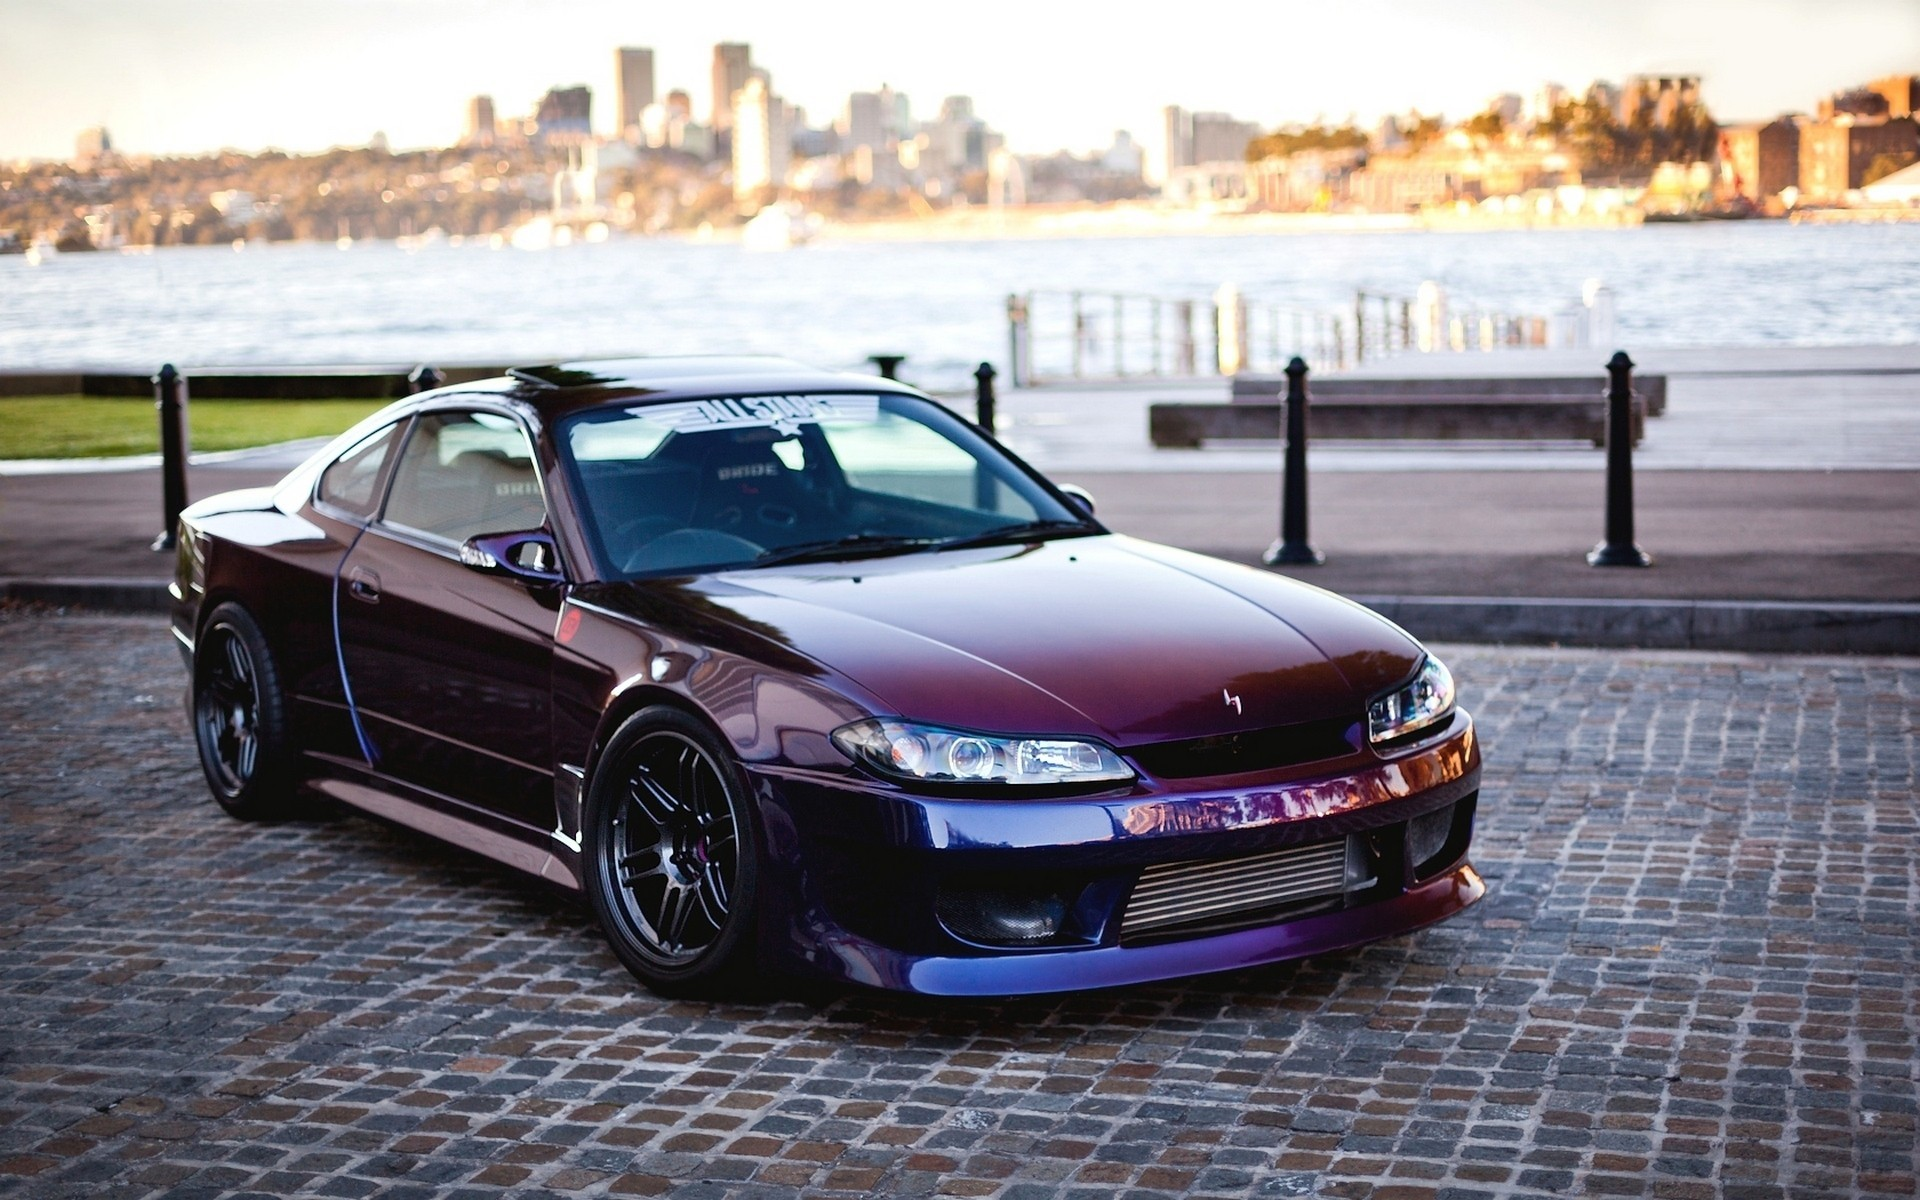 1920x1200 Cars JDM Japanese Domestic Market Nissan Silvia S15 Vehicles